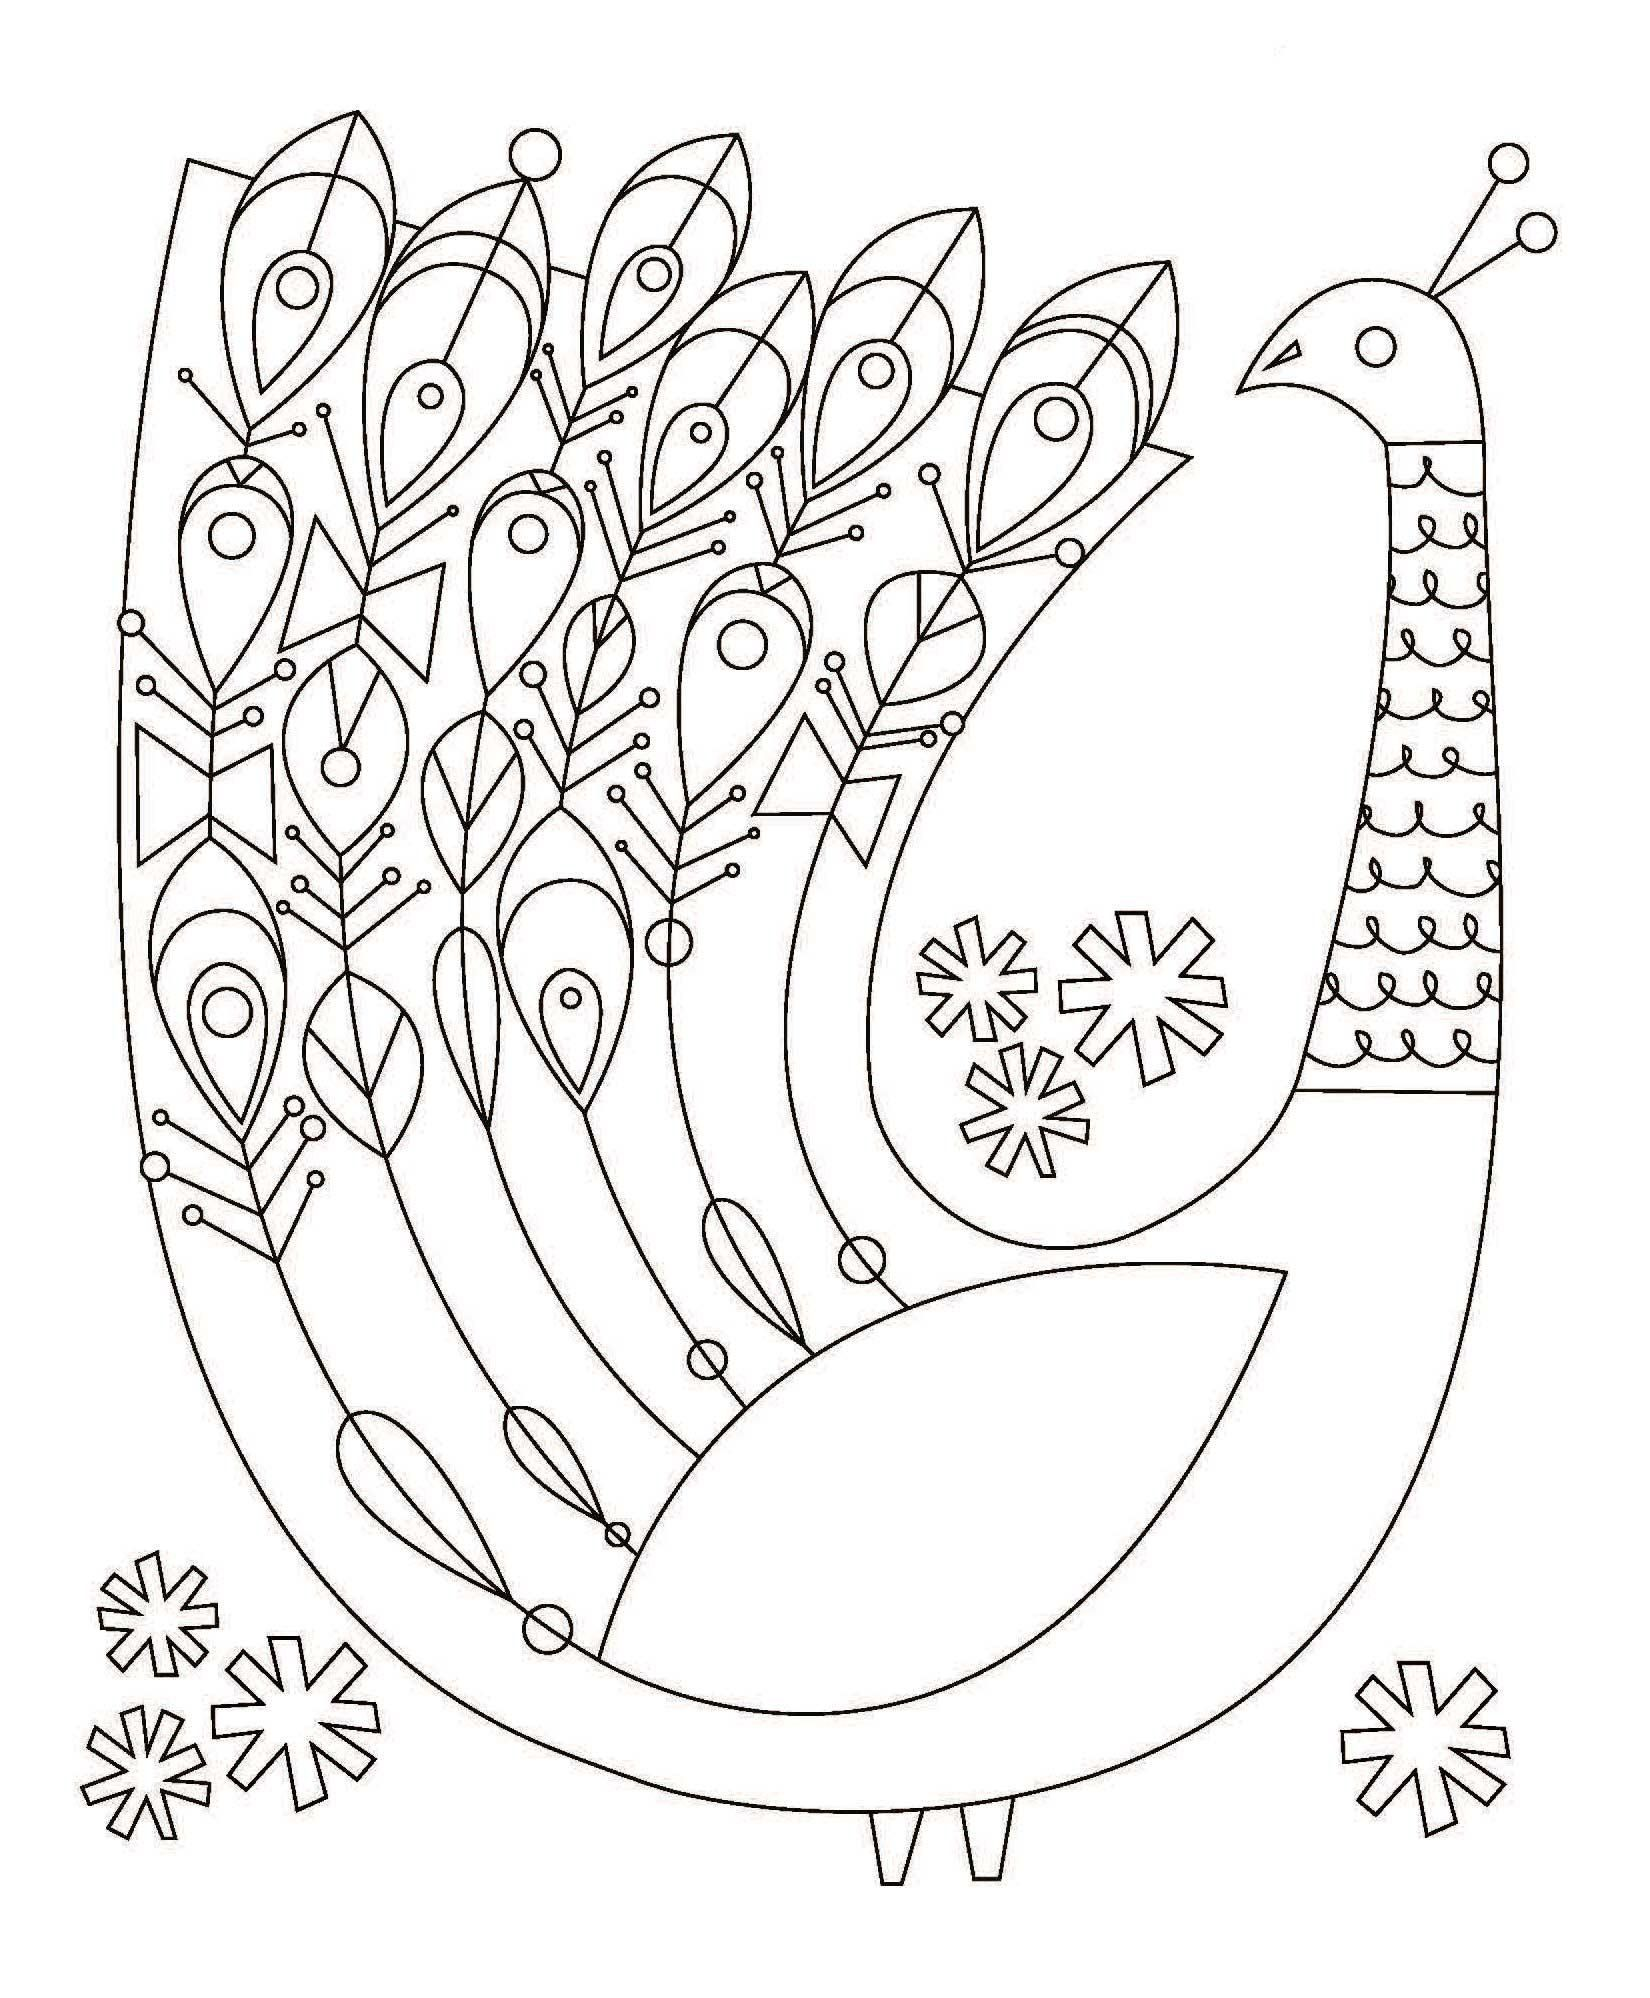 - Folk Art To Color African Folk Art Coloring Pages - Coloring